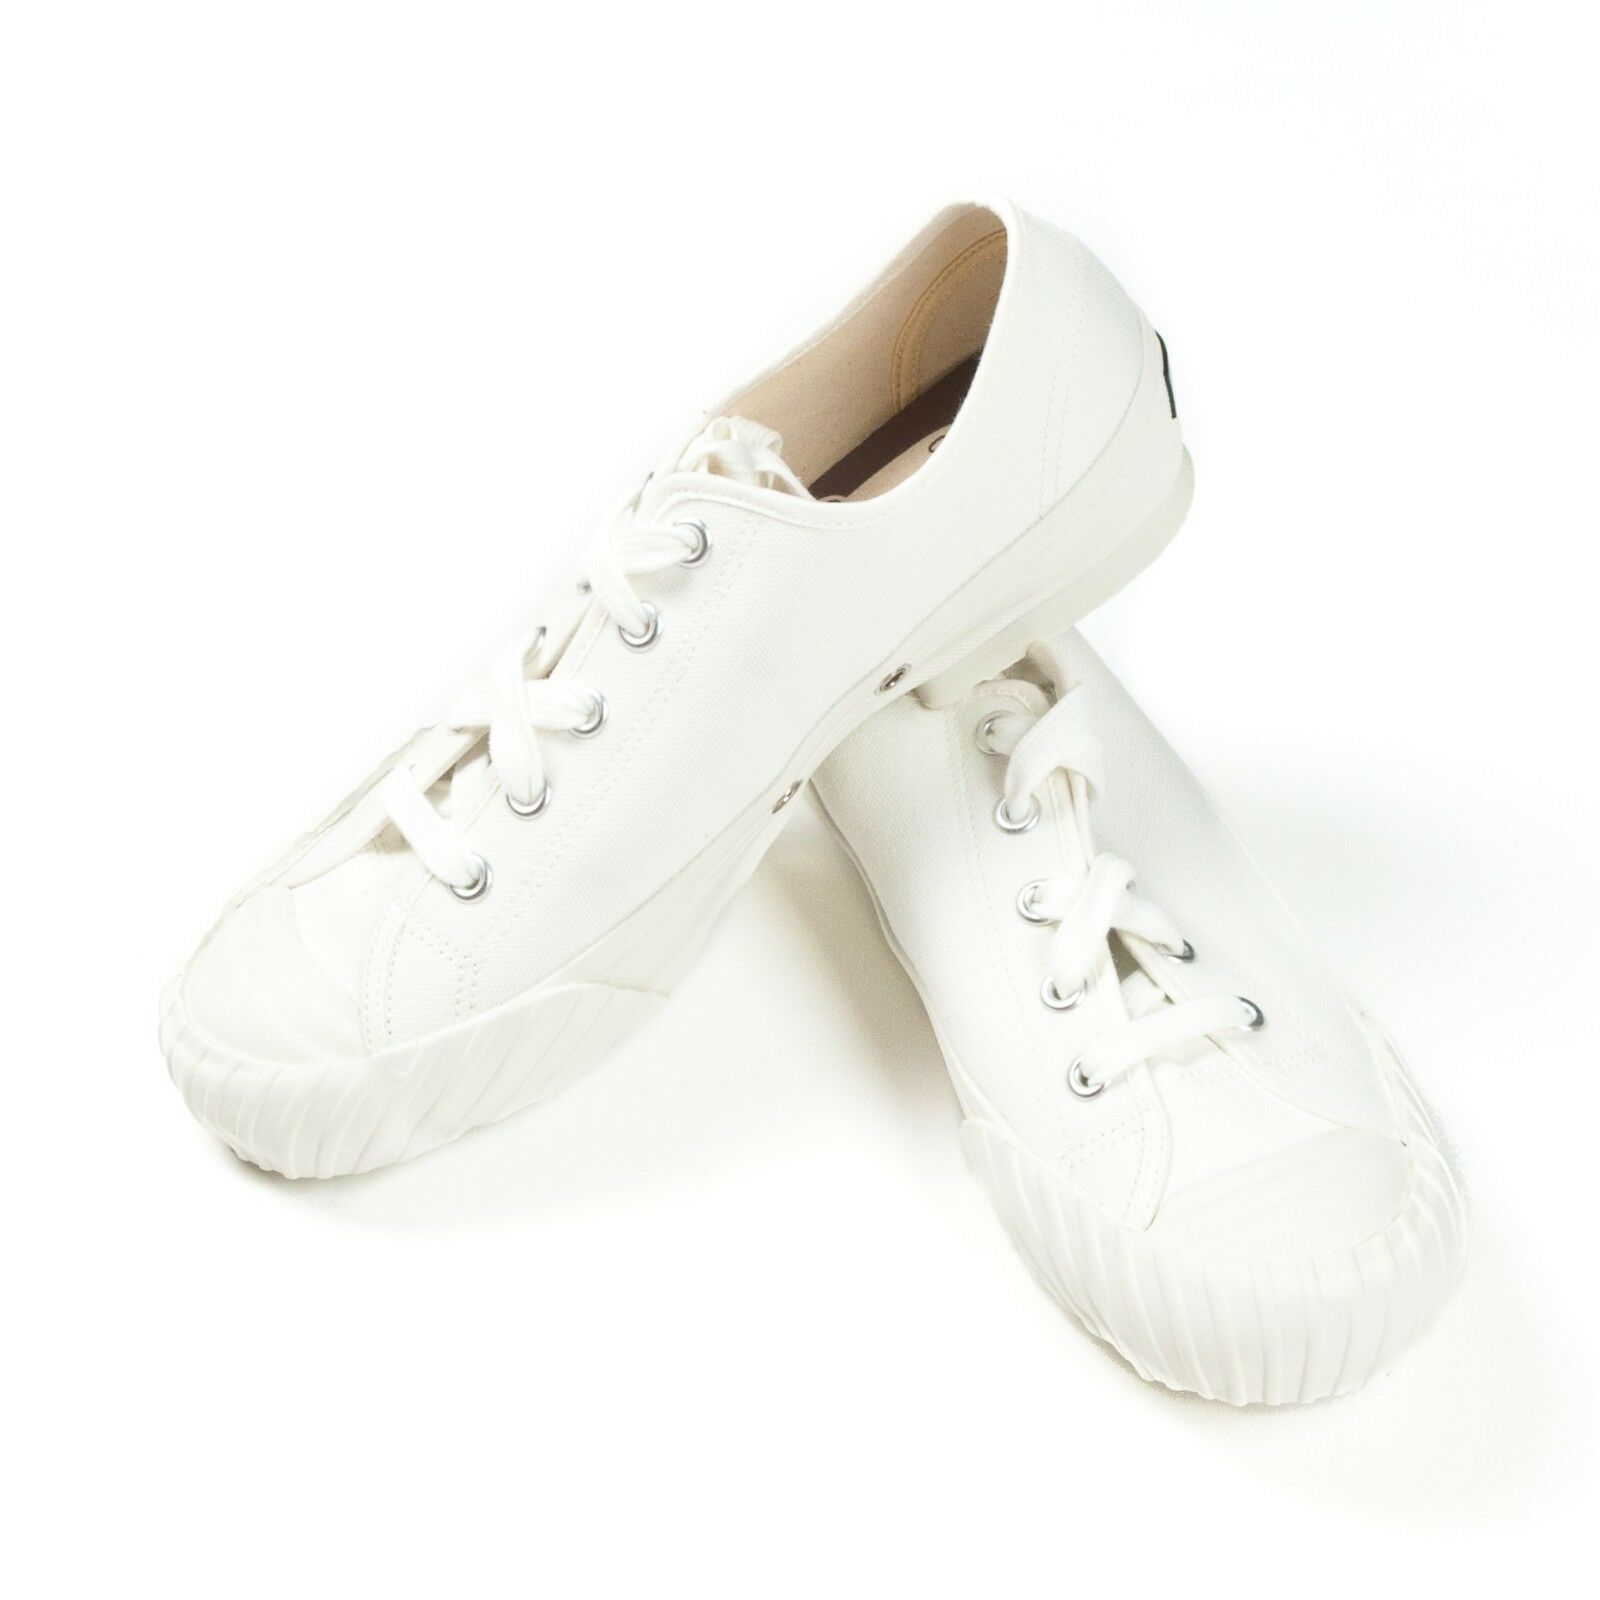 18ceee96f8c Cushman WW2 Low Cut Sneaker White Vintage Style Military Trainer US Sizes  6-11